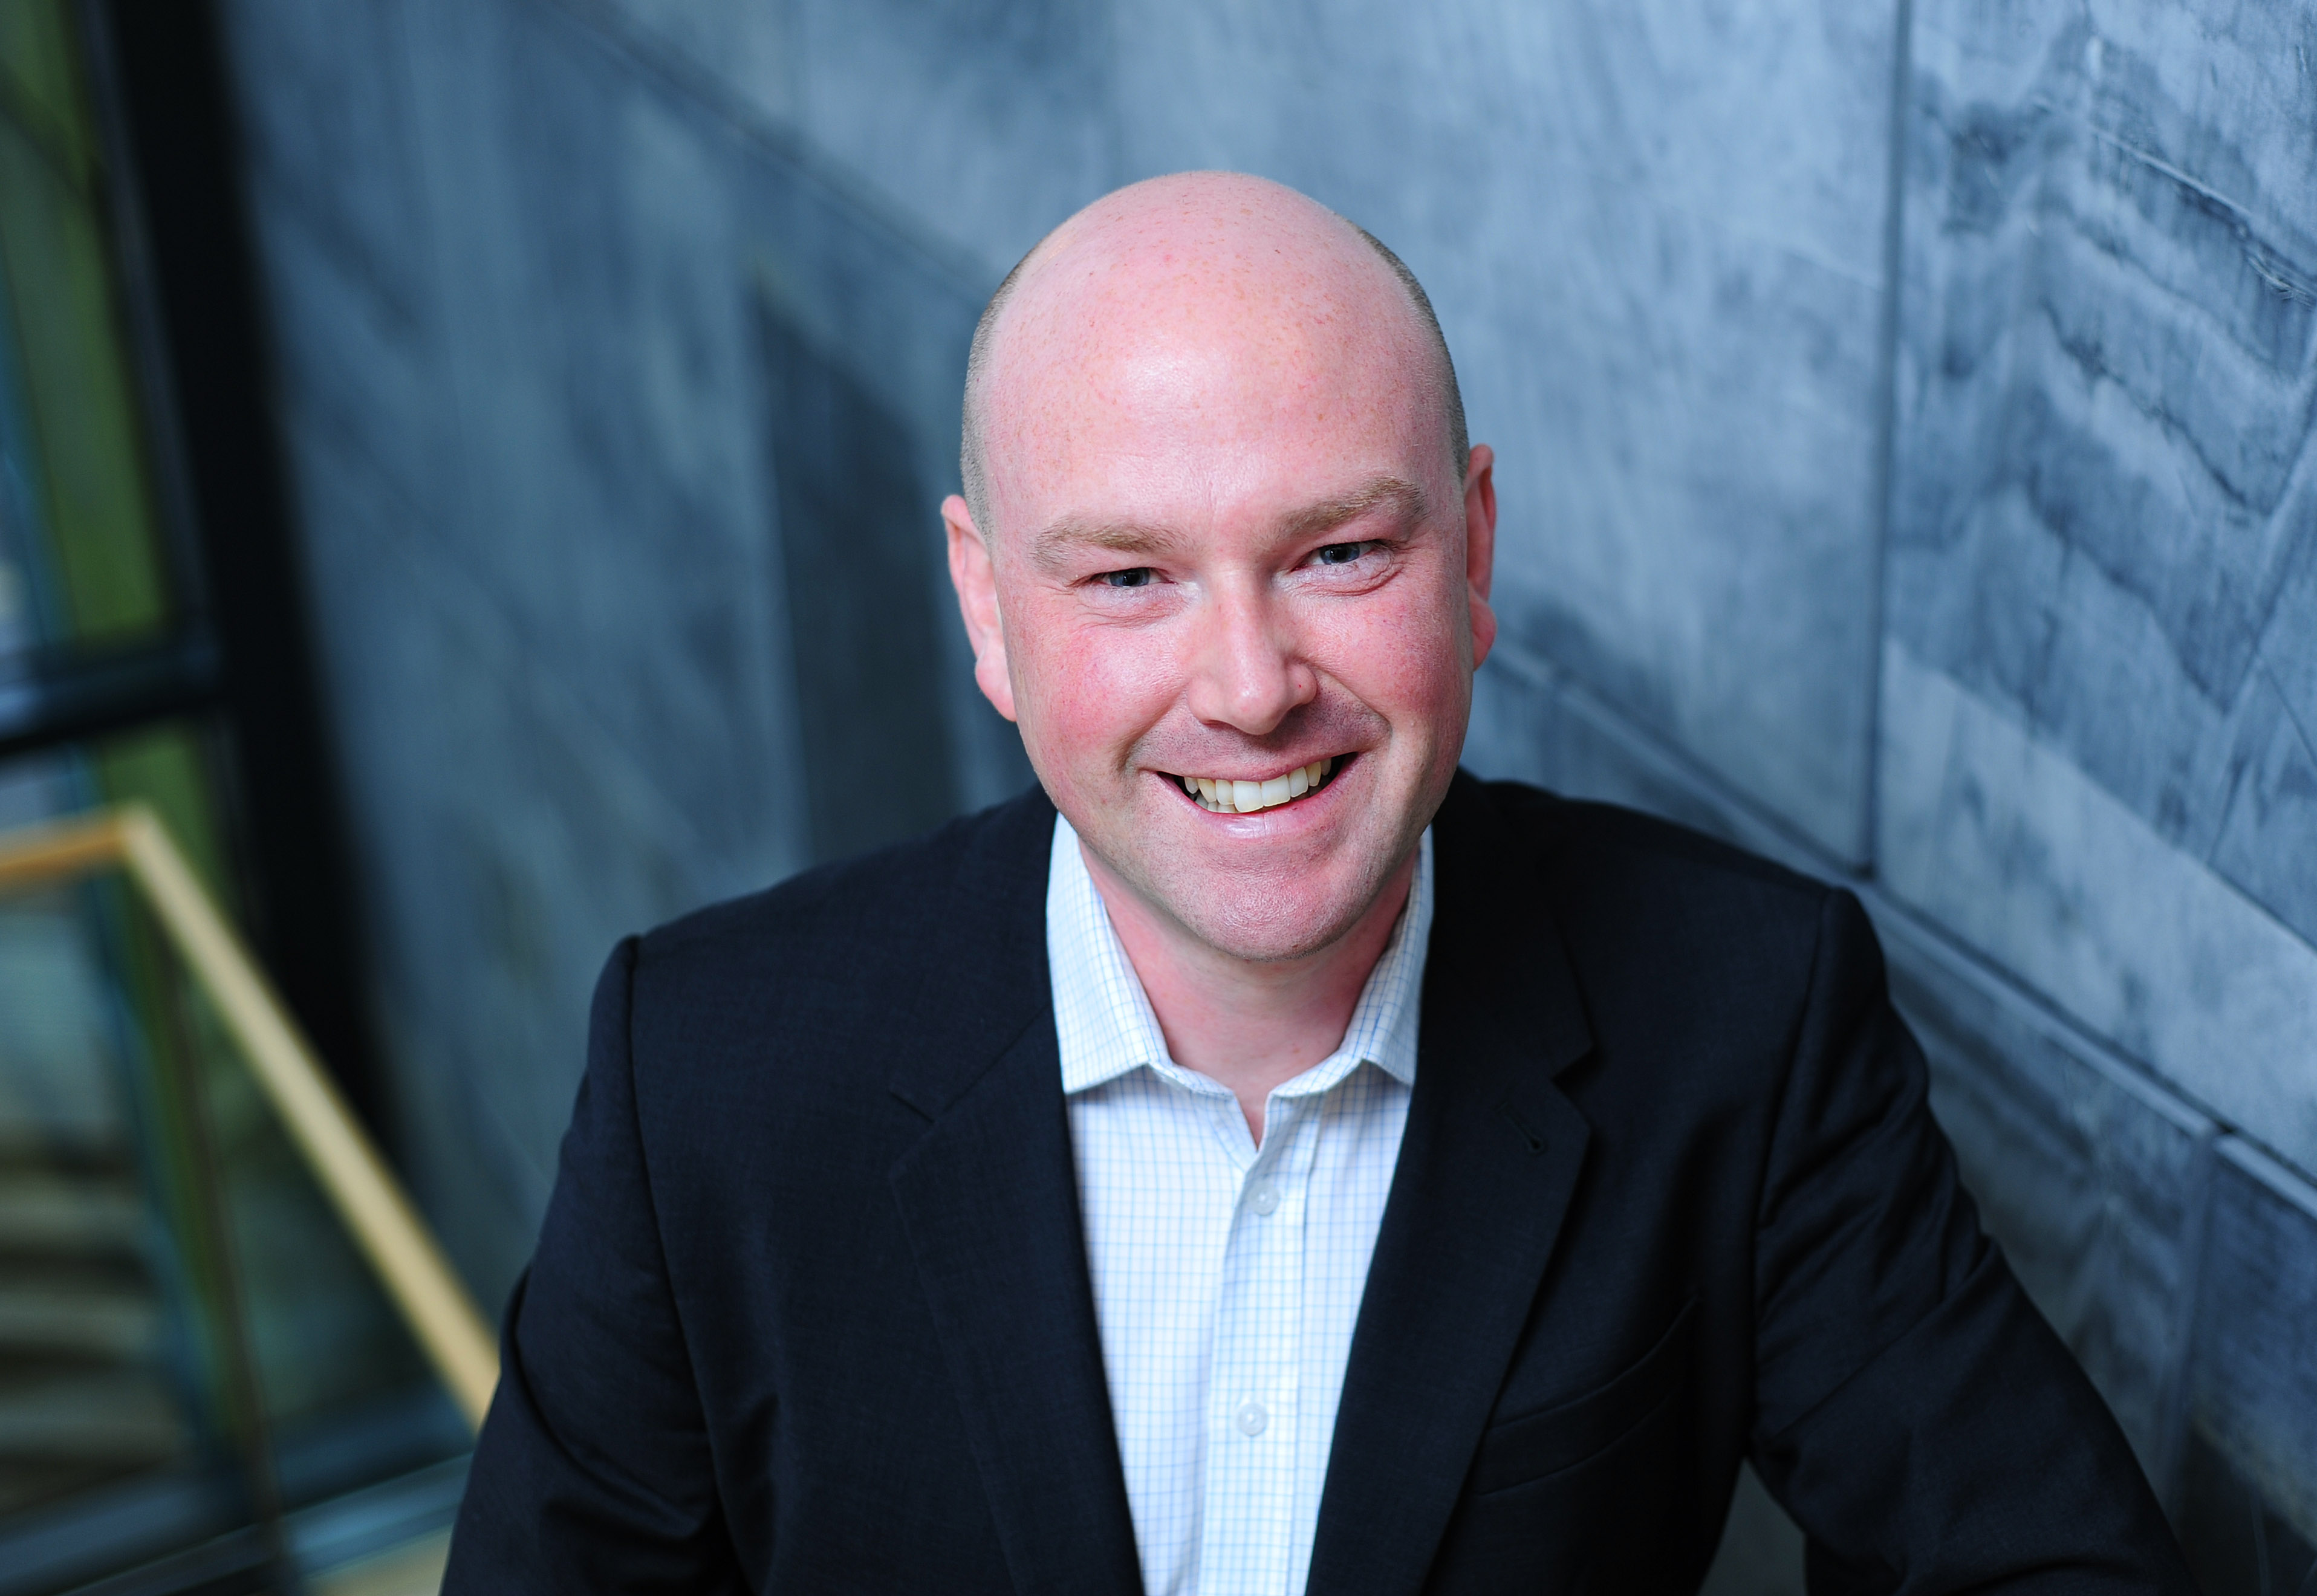 TRAC Services' director, Jonathan Trethowan. The Pool-based regulatory affairs business has been named in the top 100 UK Healthcare Consultants